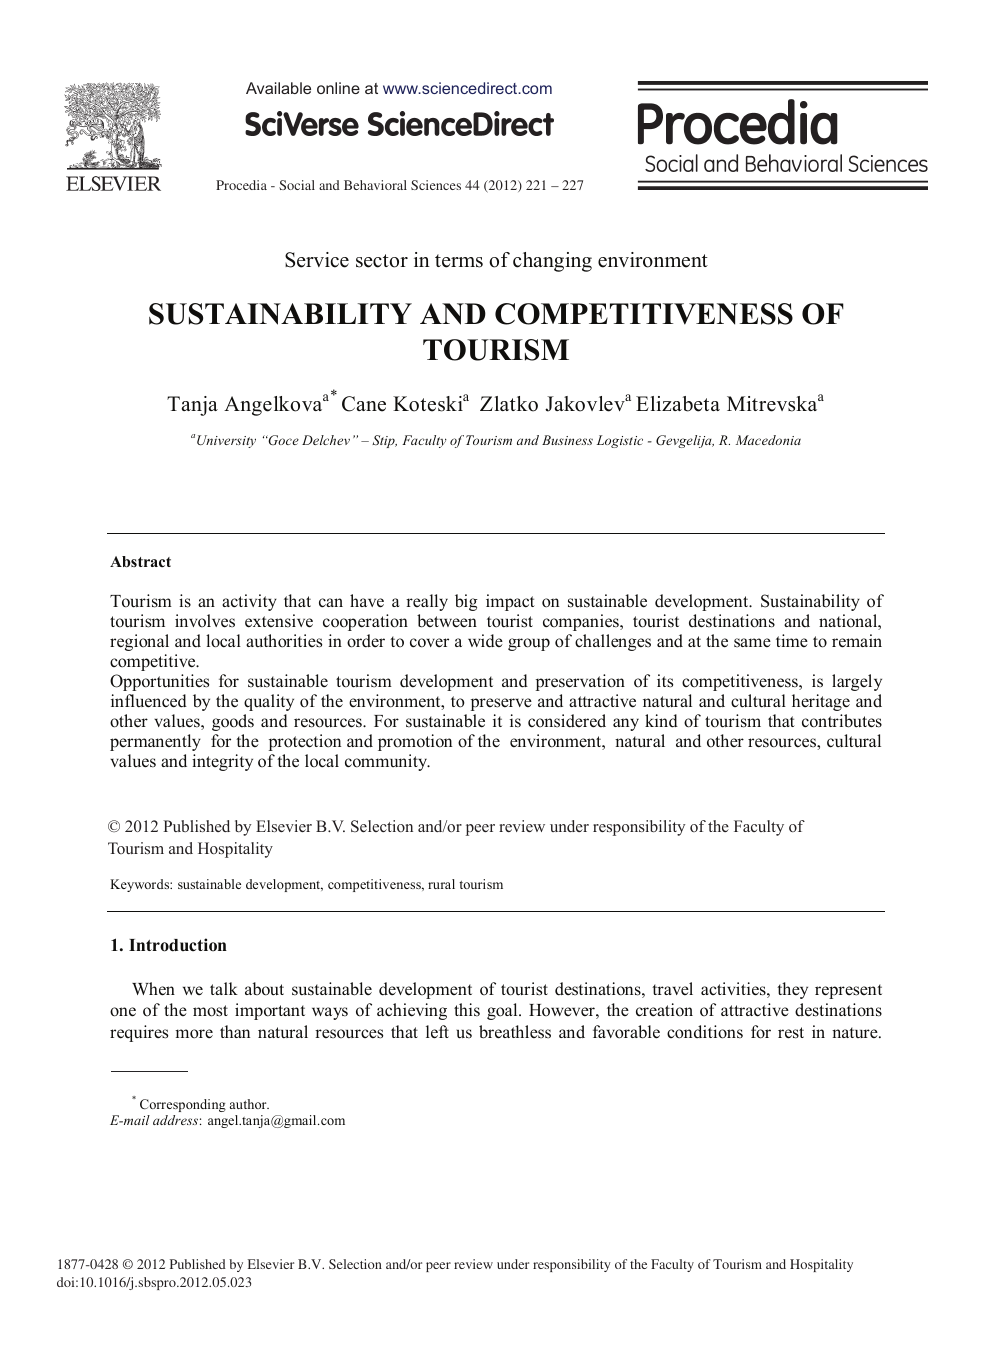 Sustainability and Competitiveness of Tourism – topic of research